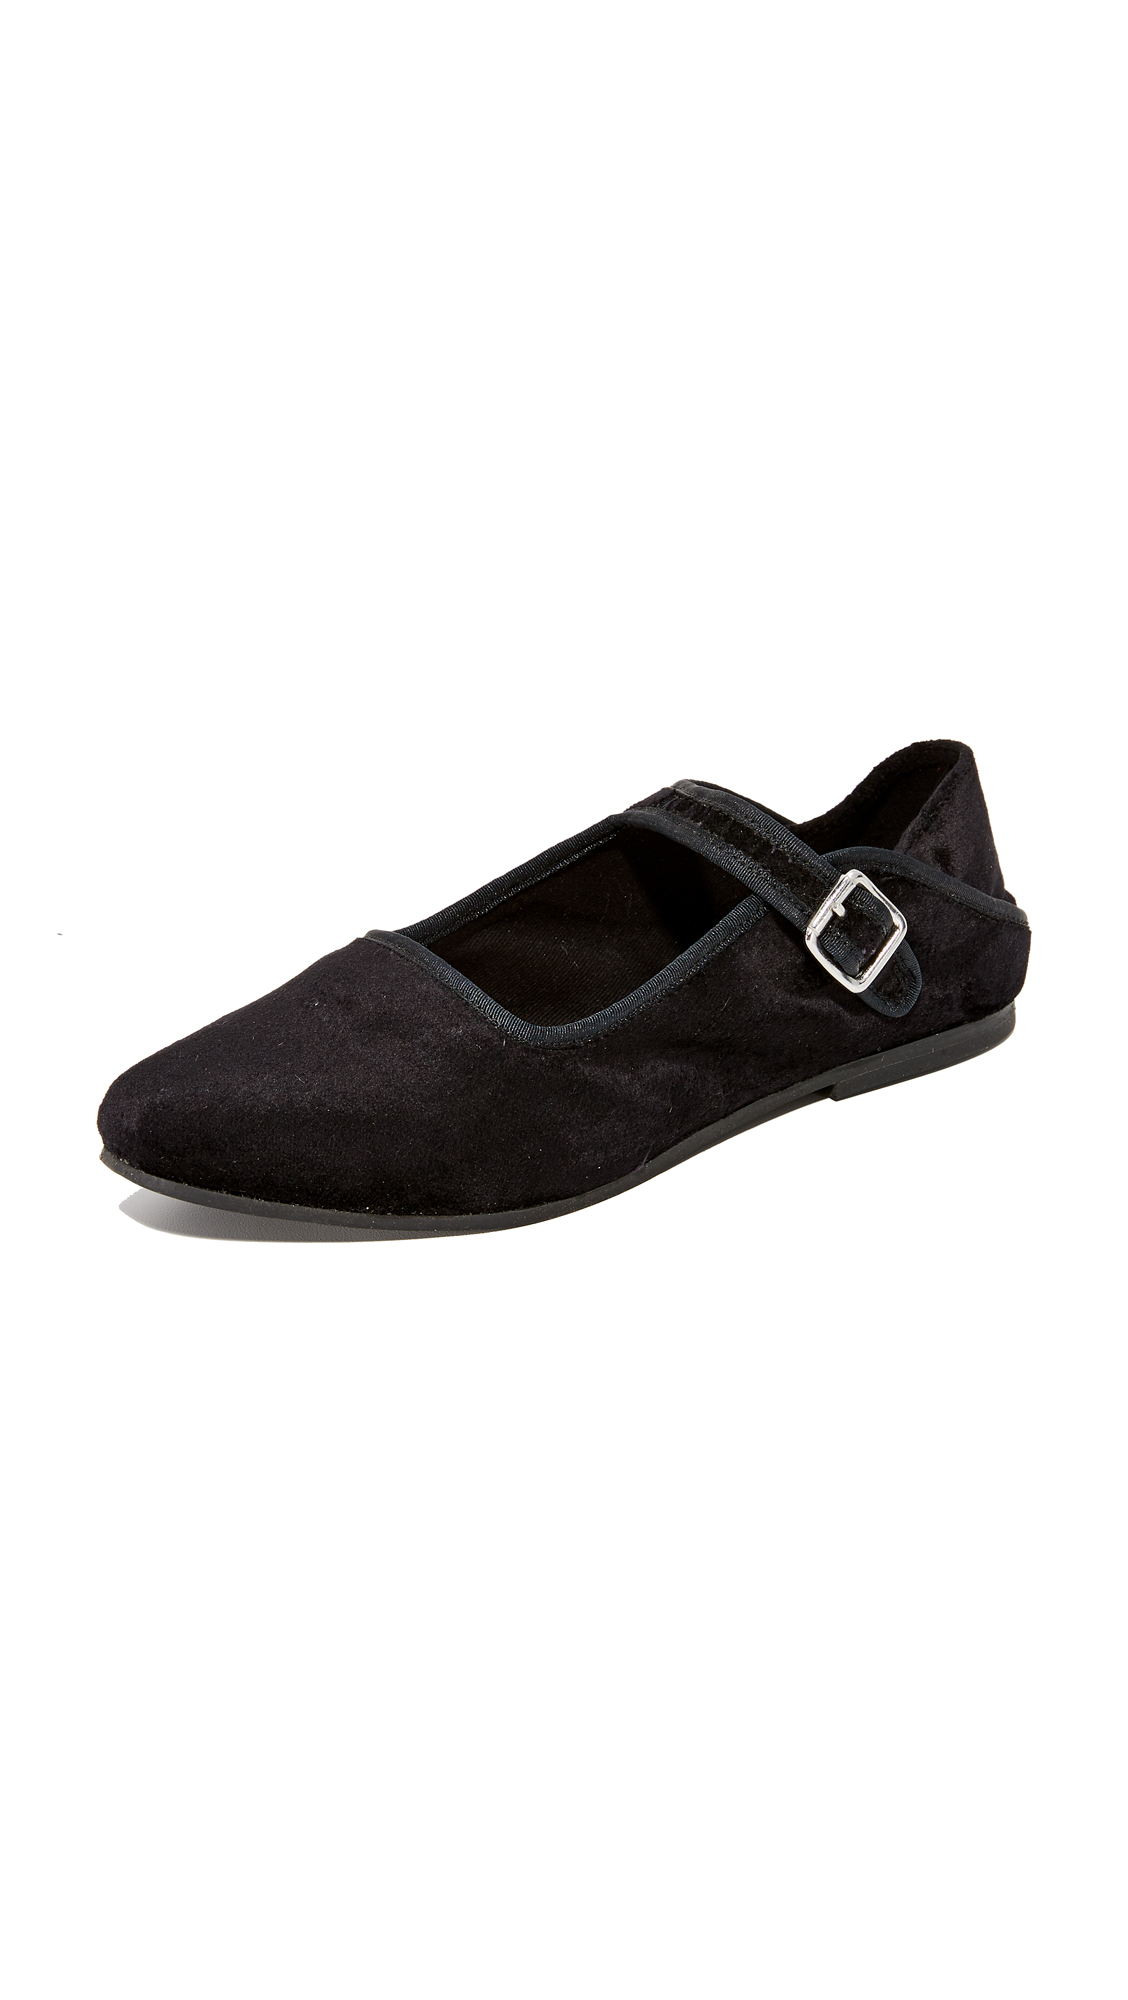 Free People Evie Mary Jane Convertable Flats - Black